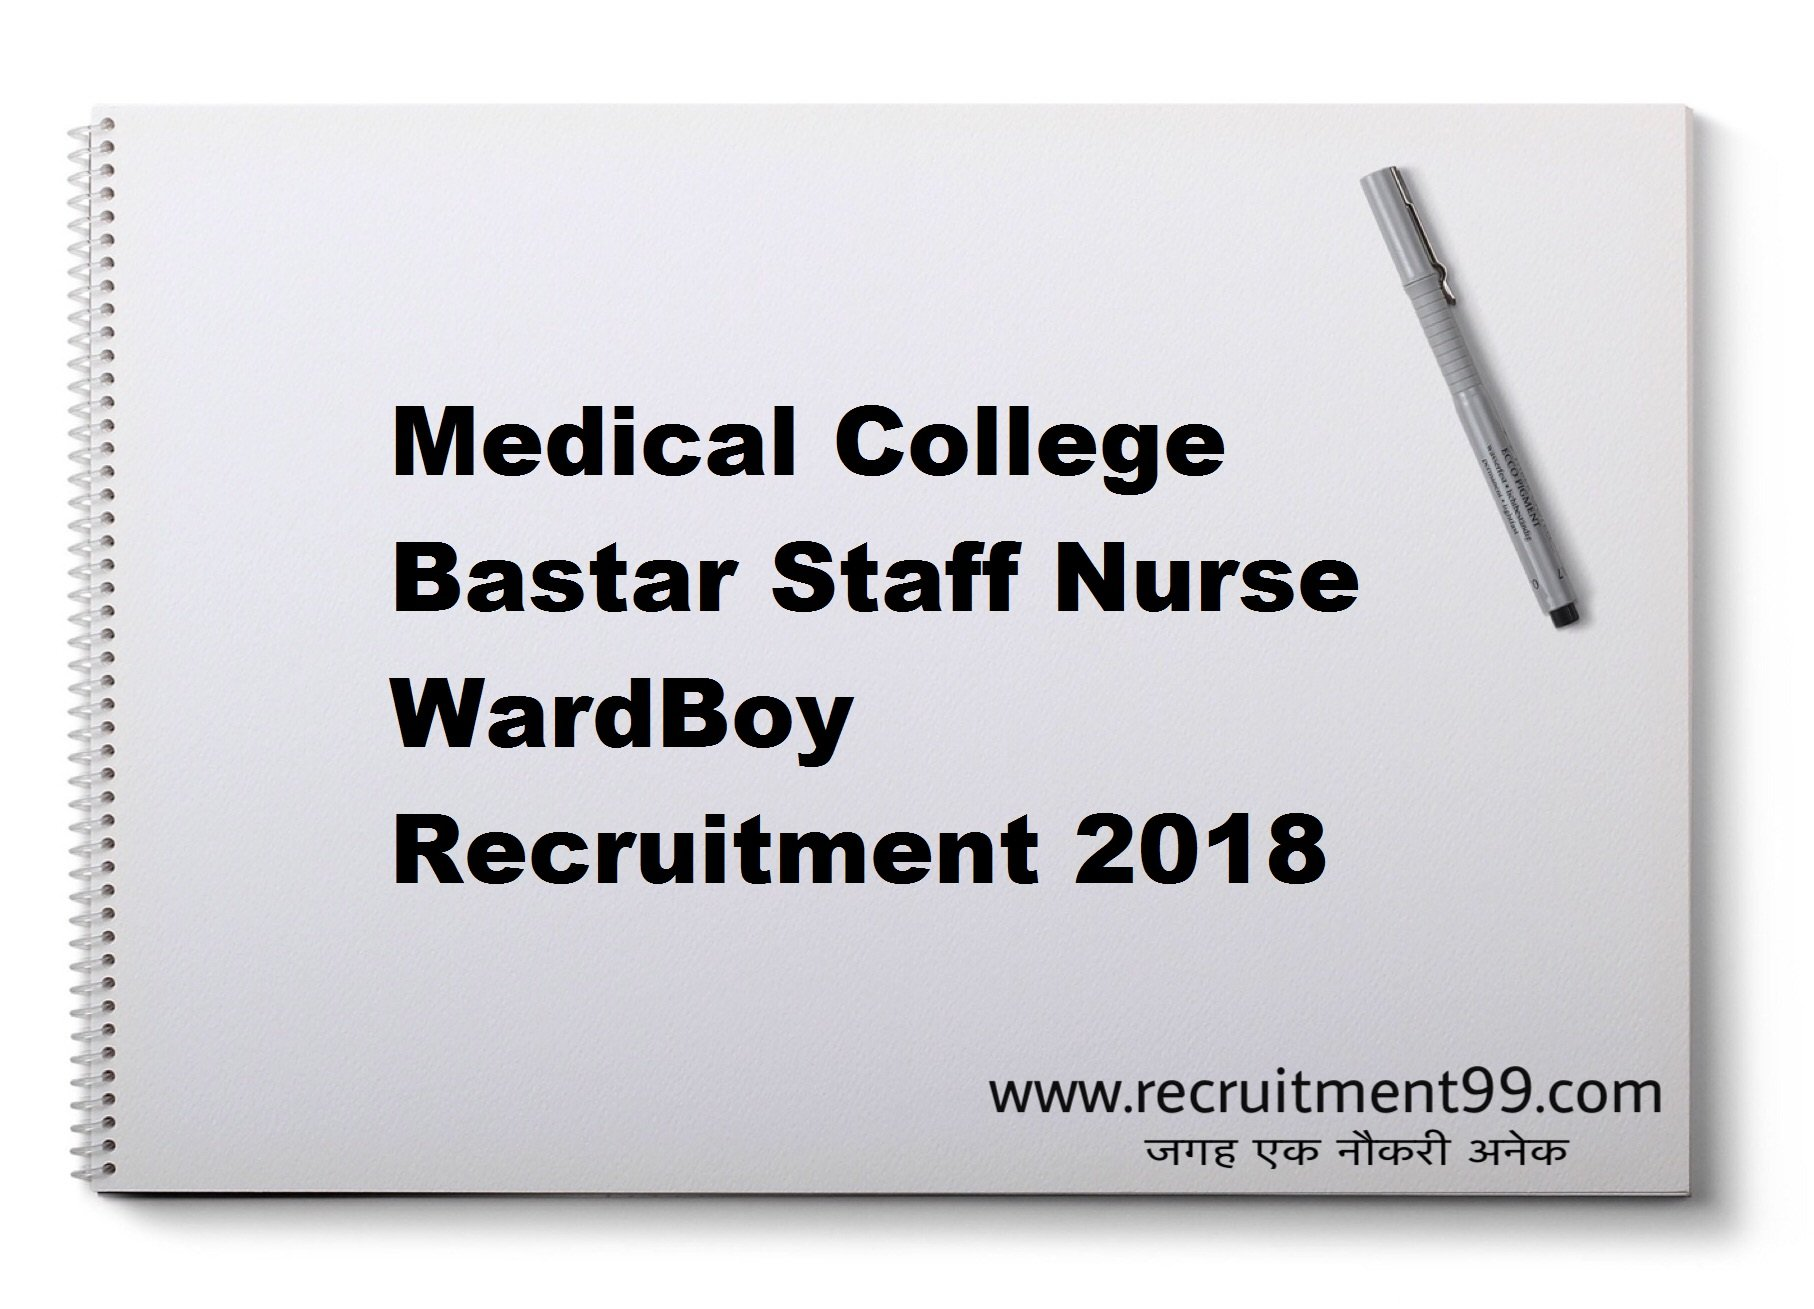 Medical College Bastar Staff Nurse Ward Boy Recruitment Admit Card Result 2018